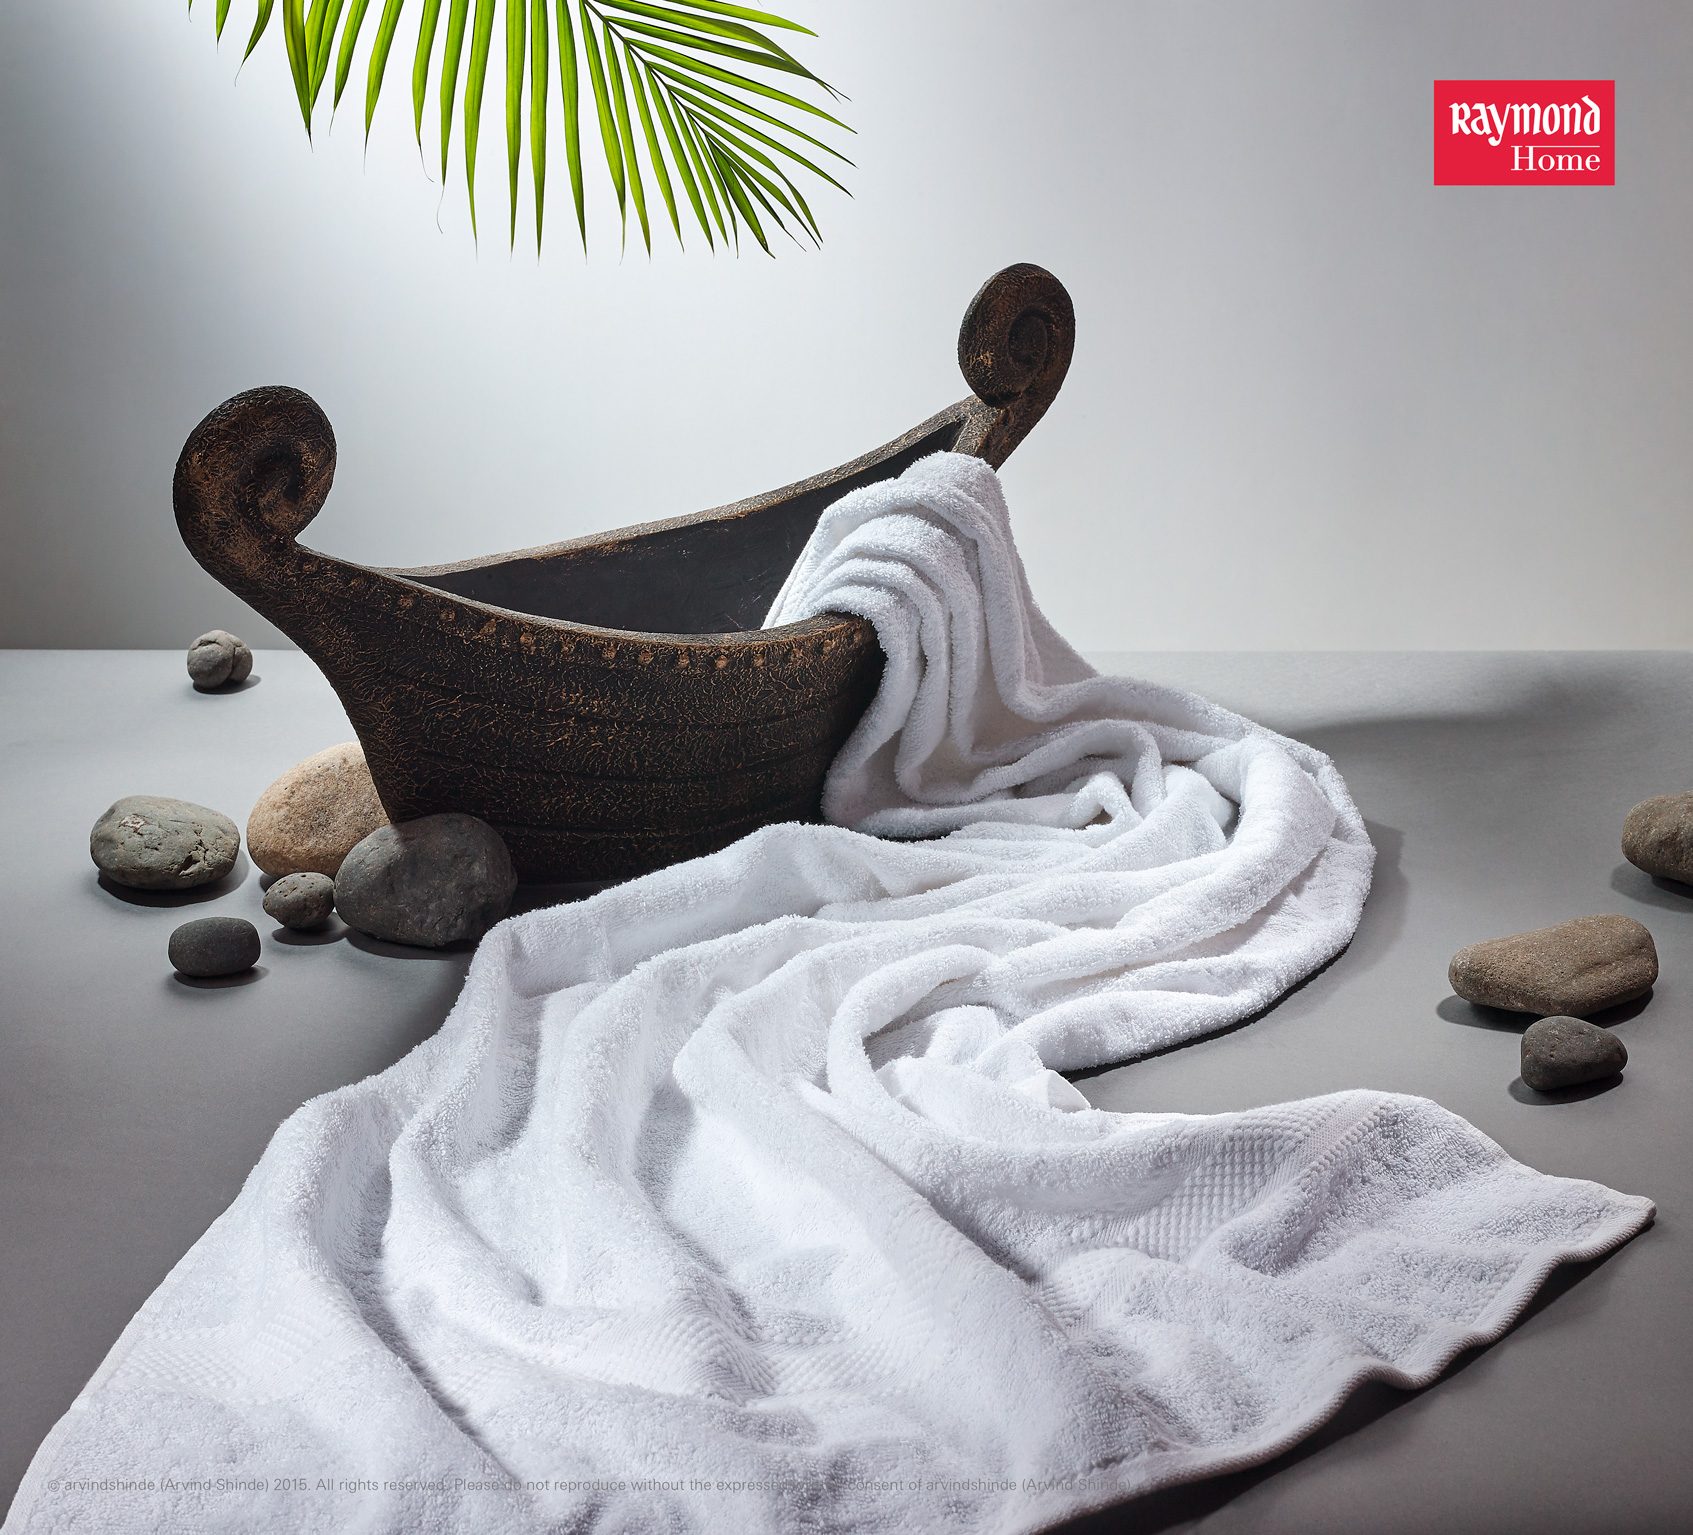 Raymond-Home-Bath-Towel